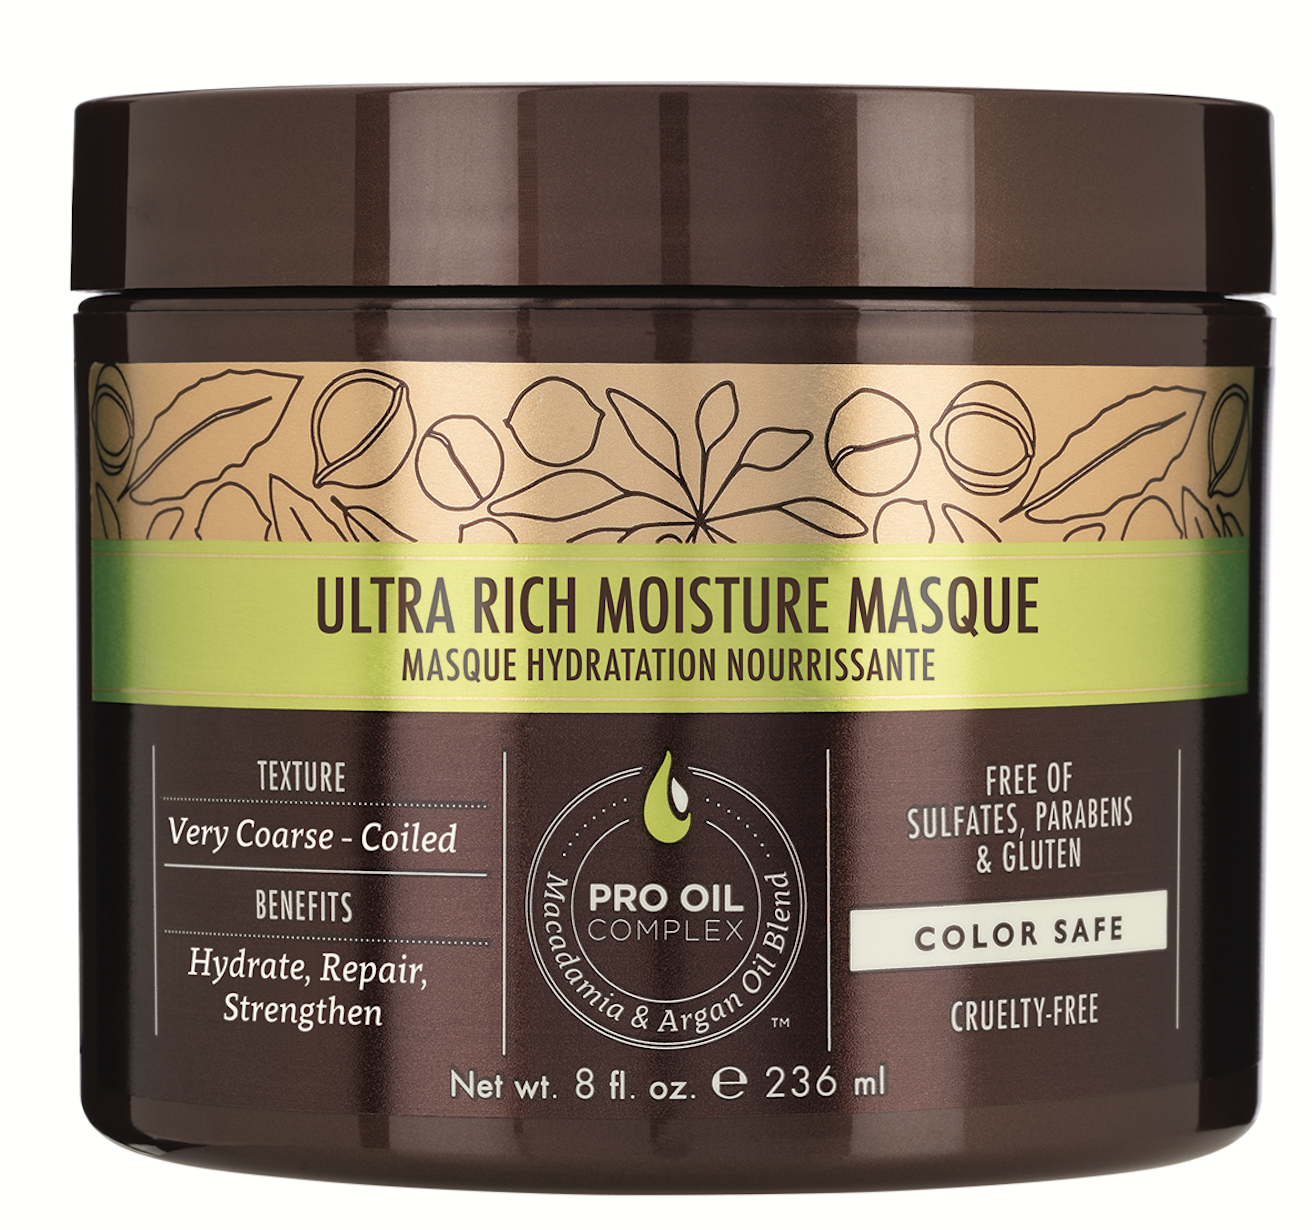 Formulated with shea butter and mongongo, macadamia and argan oils, Macadamia Professional Ultra Rich Moisture Masque infuses curls with intense hydration.